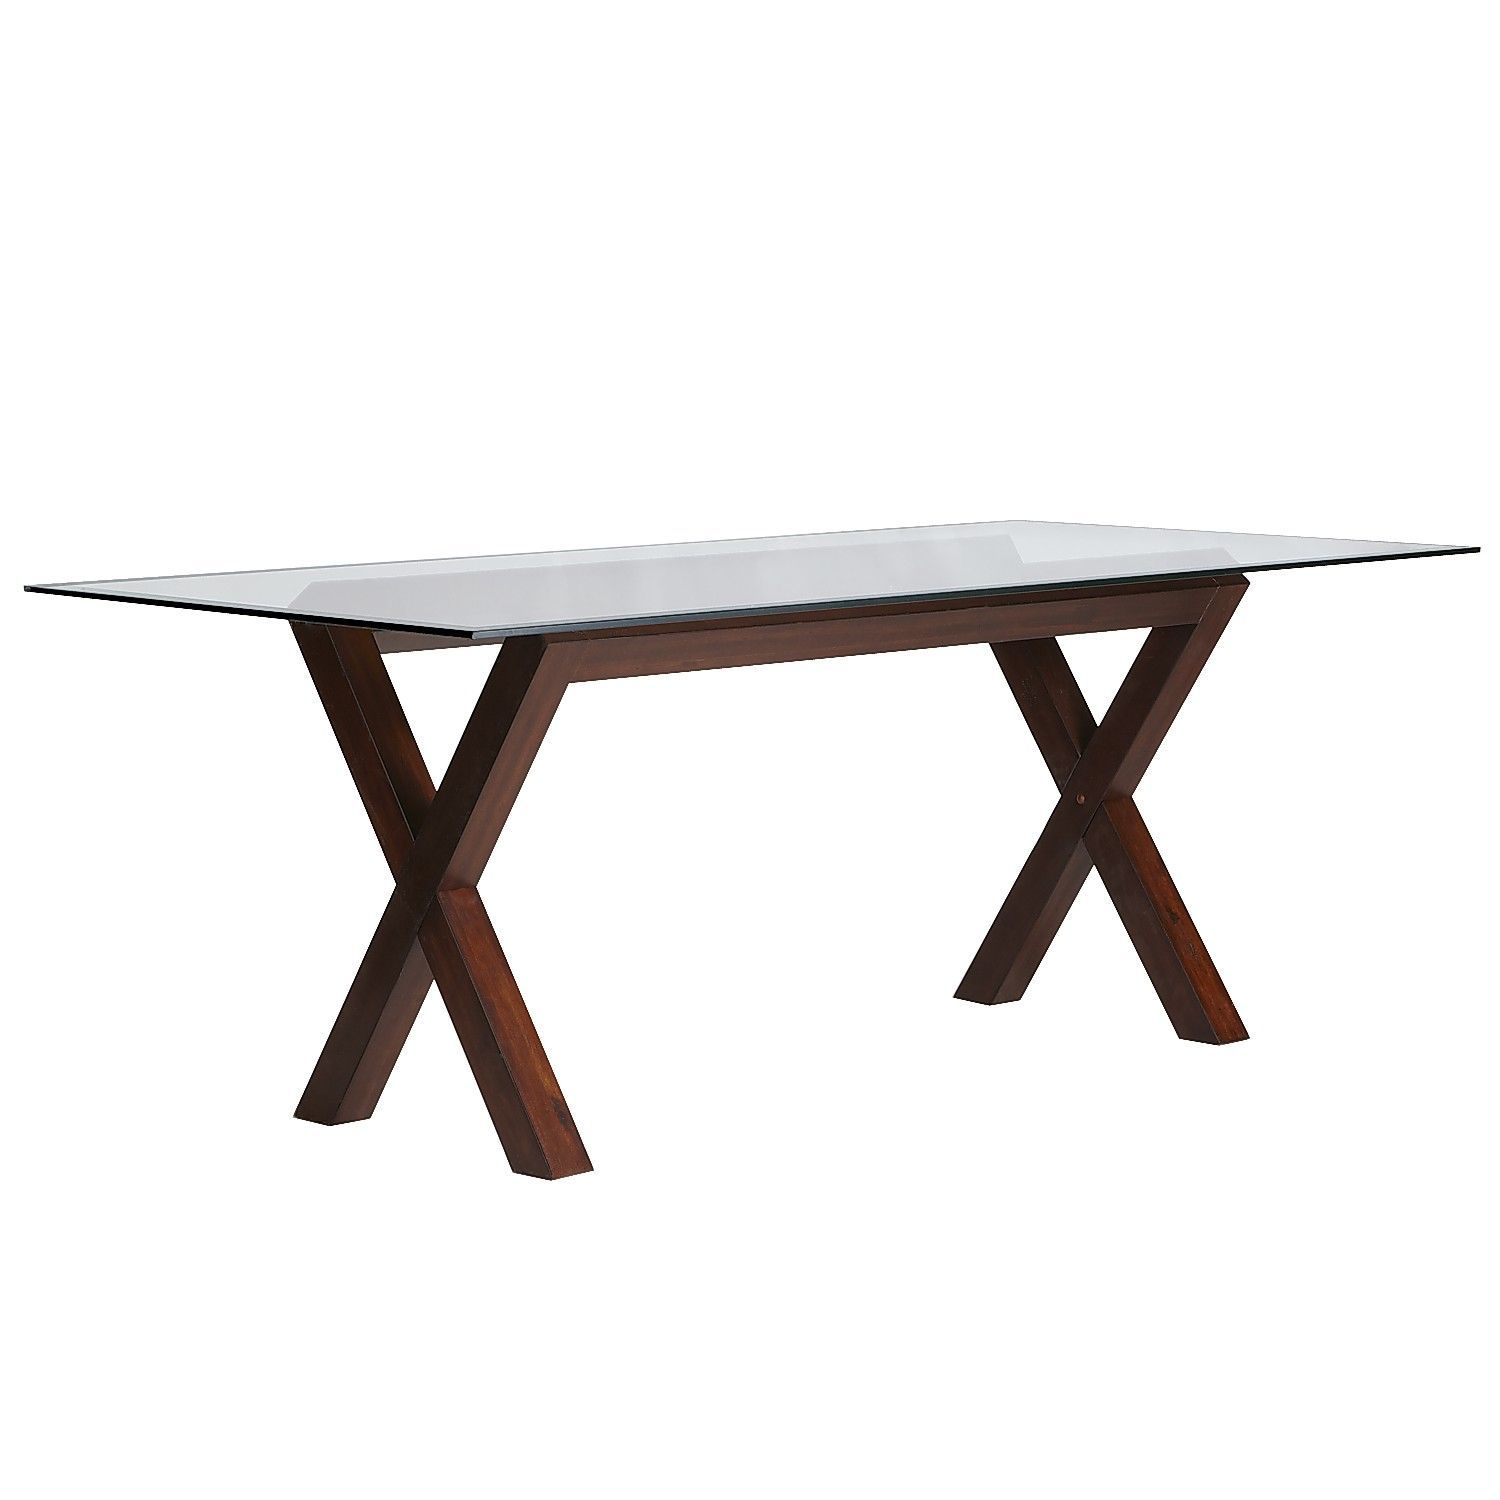 Bennett Dining Table Base Mahogany Brown Pier 1 199 99 On Sale